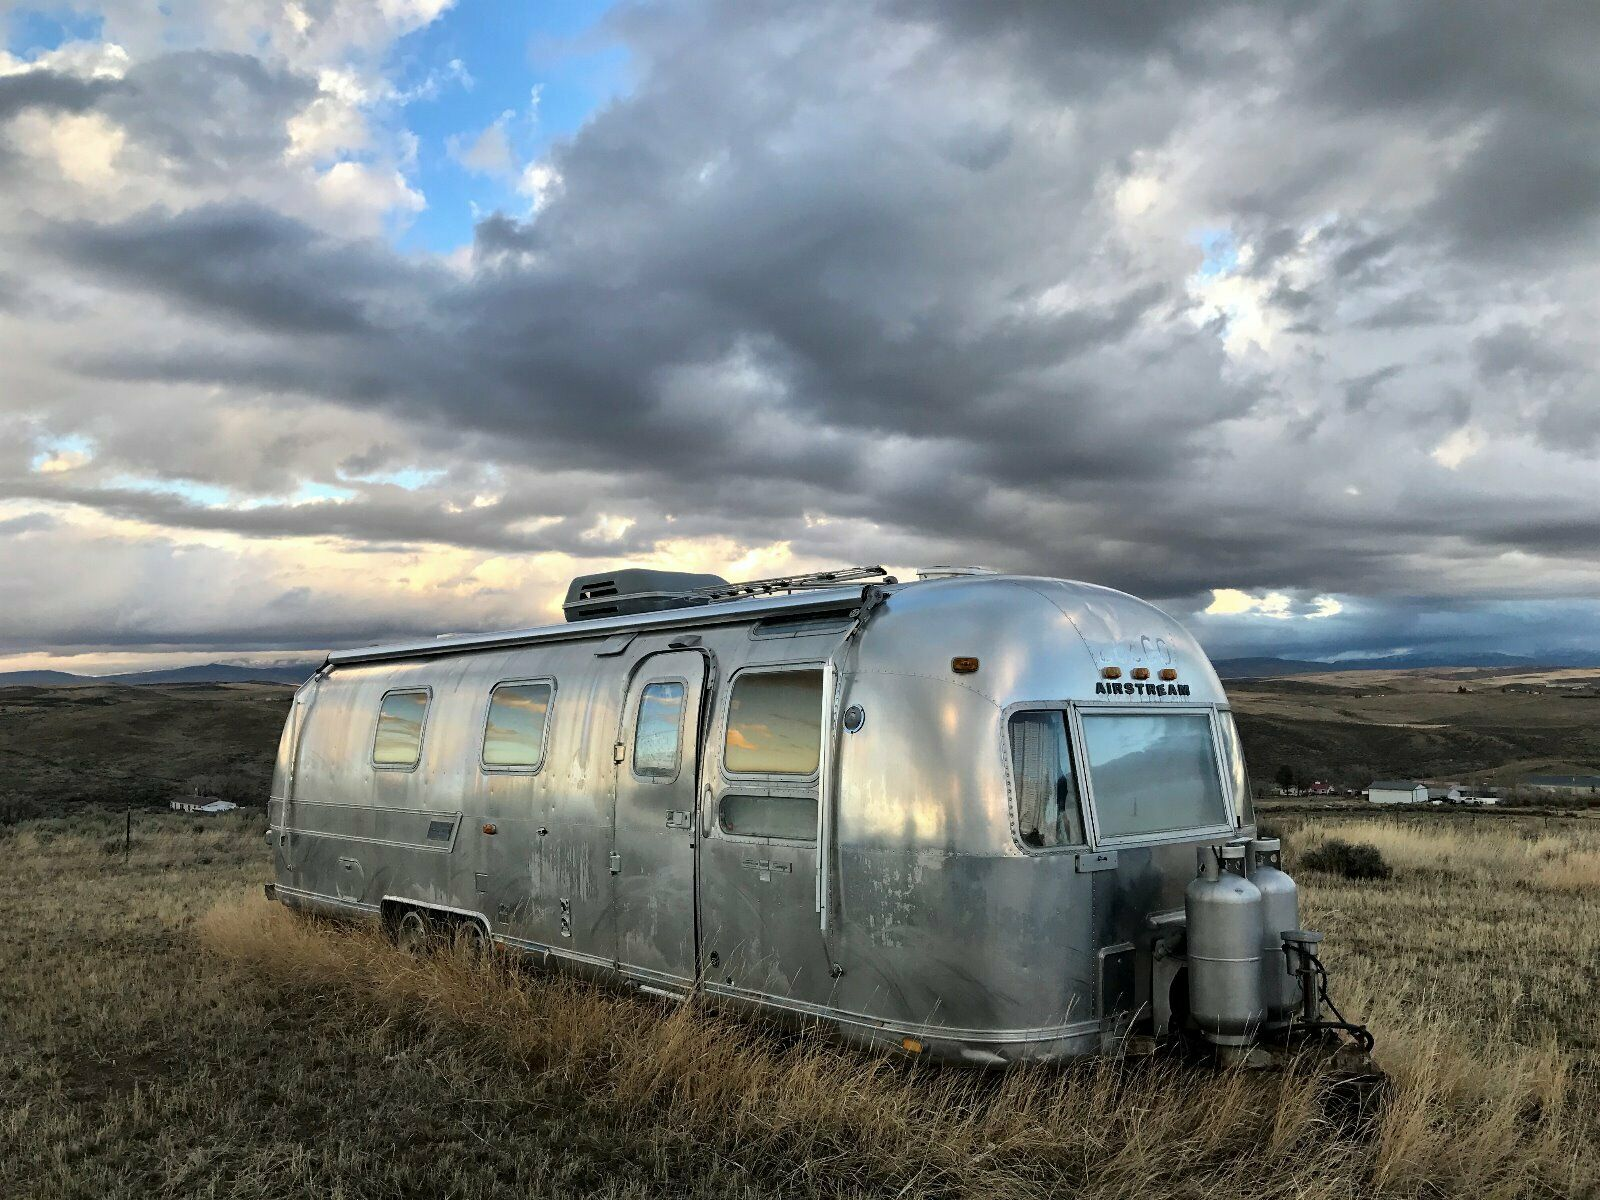 mostly all original 1977 Airstream Sovereign camper